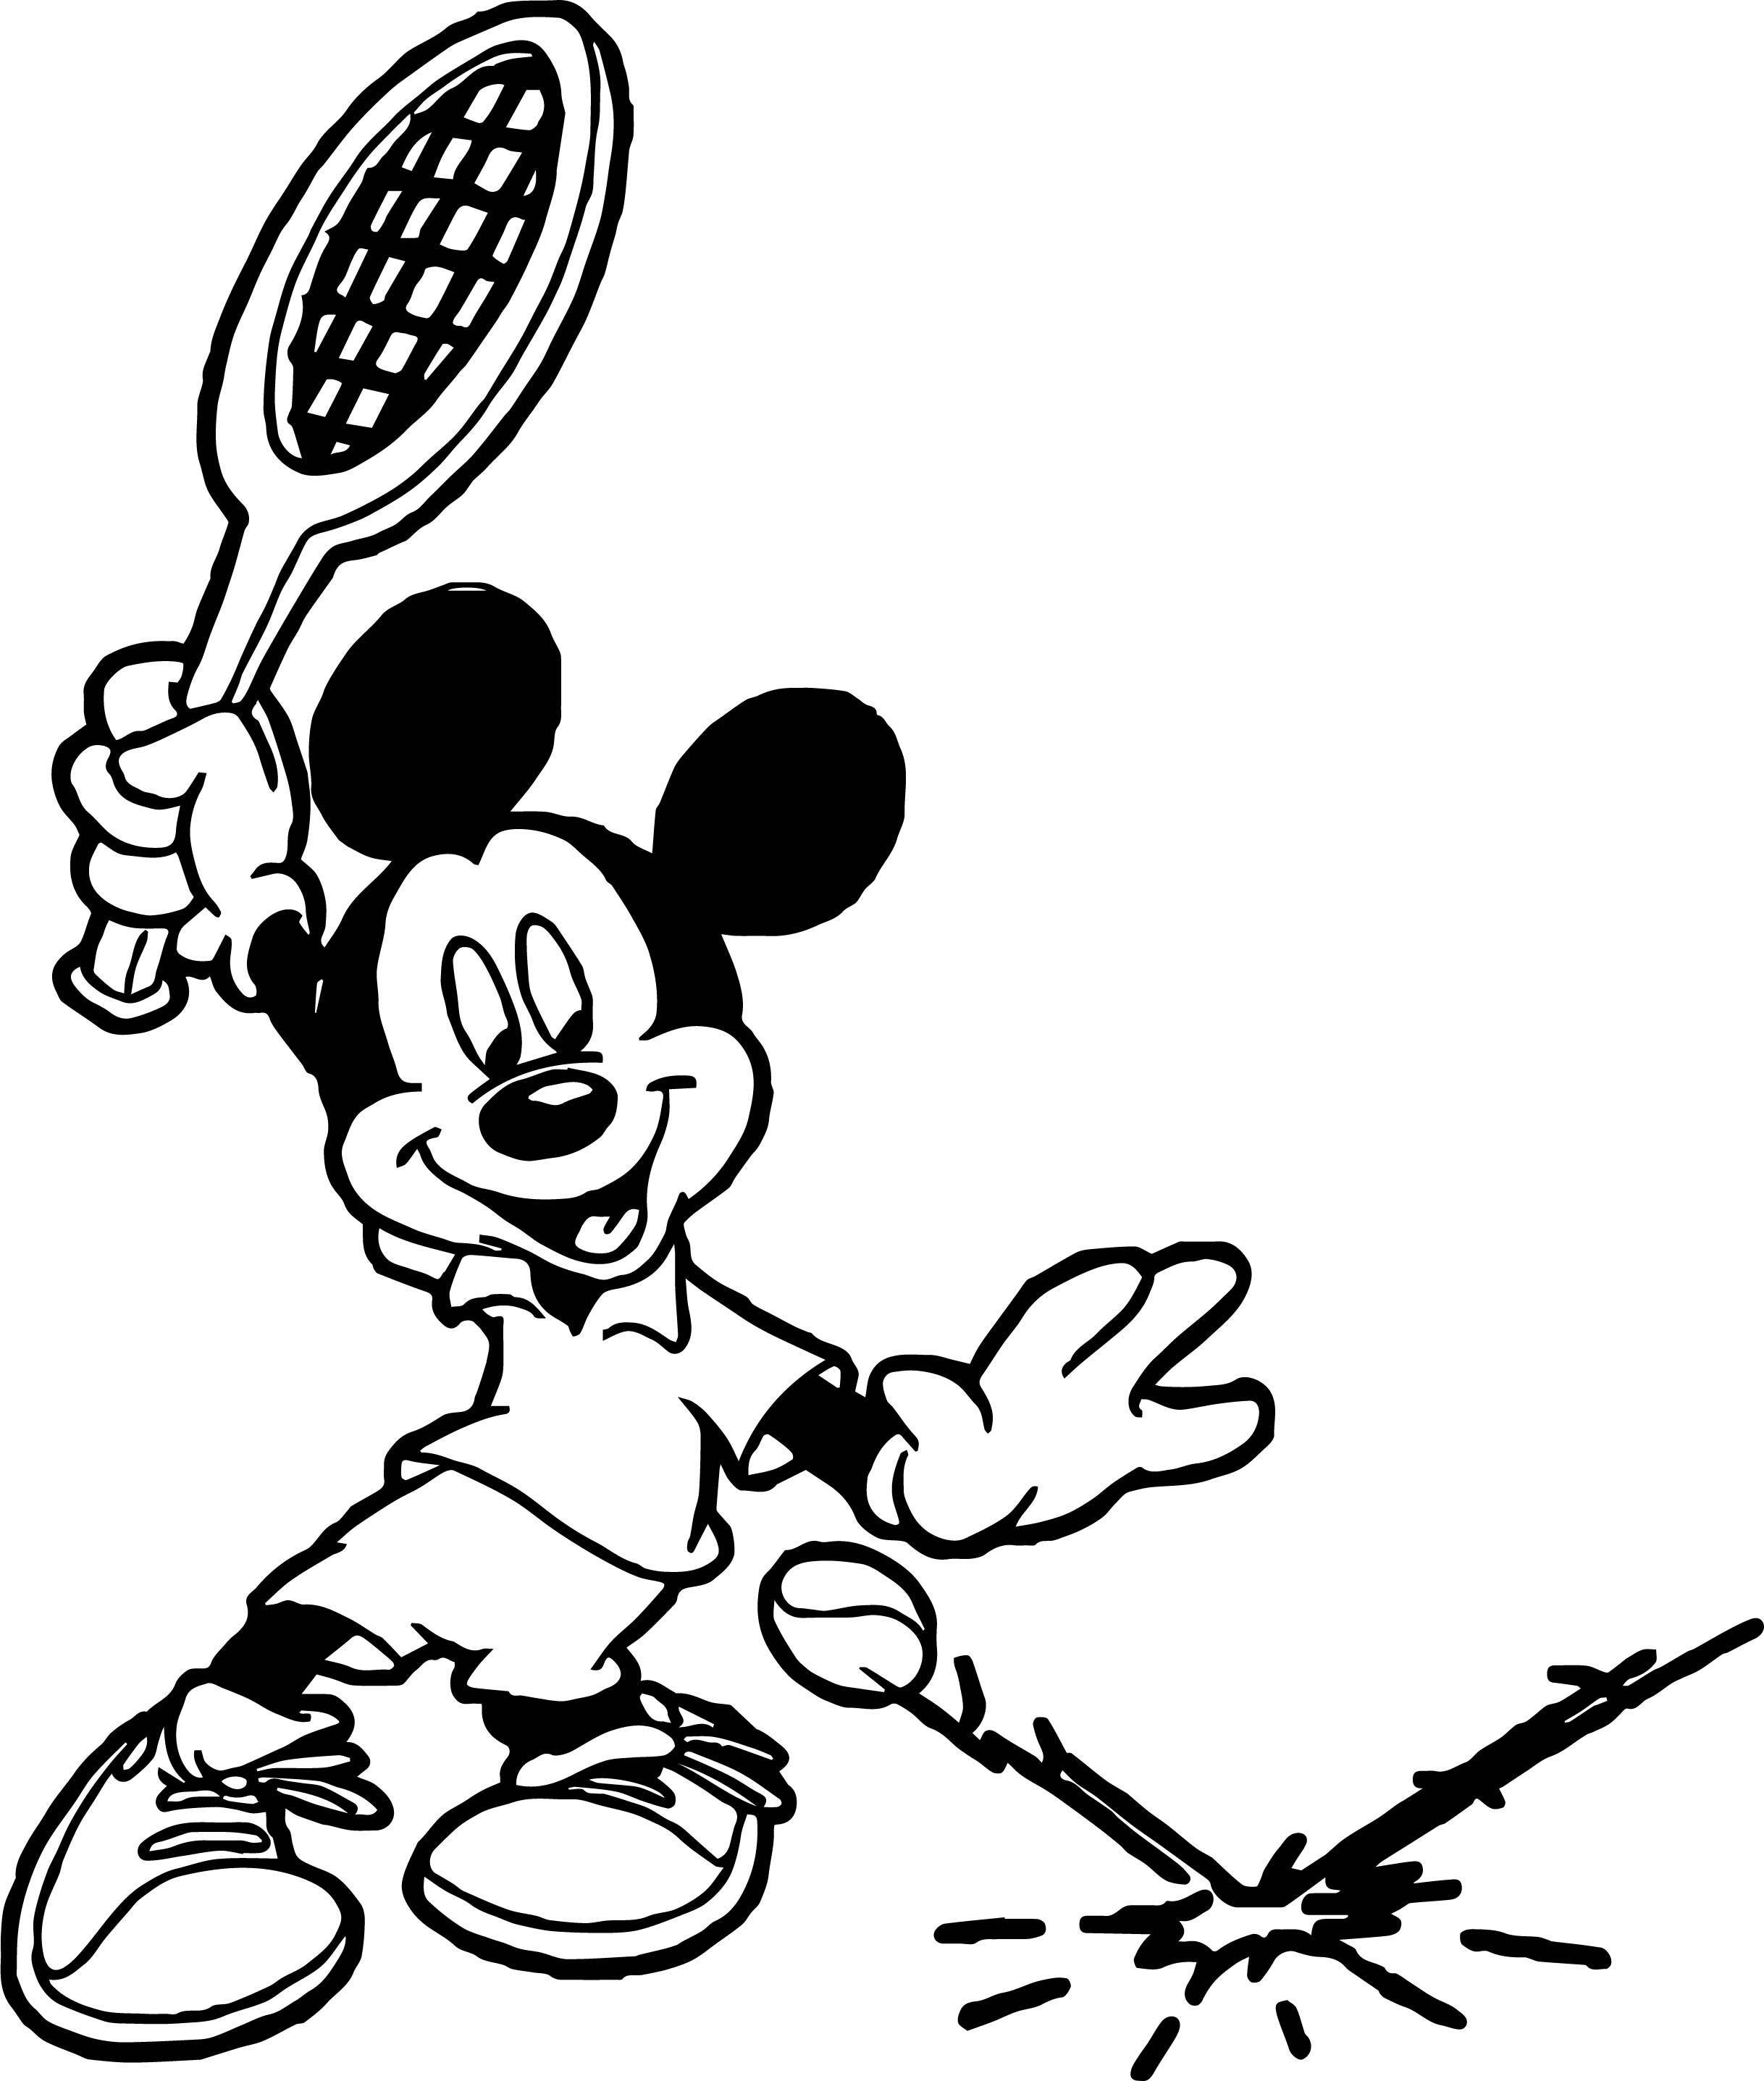 mickey tennis splash tennis ball coloring page